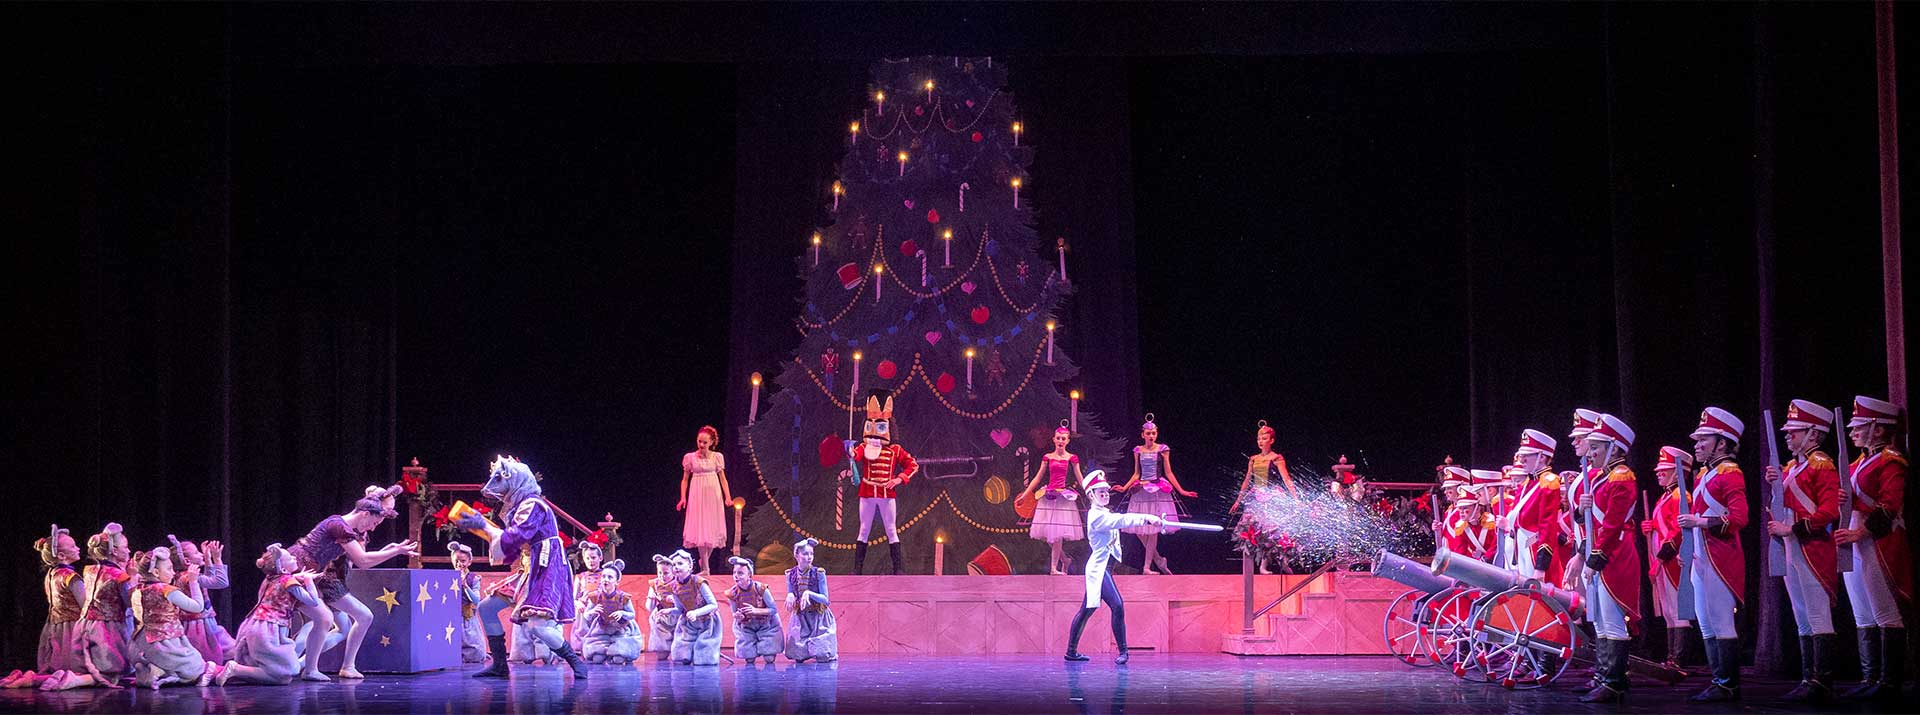 Ticket Information for The Nutcracker by Garden city Ballet - dancers on stage